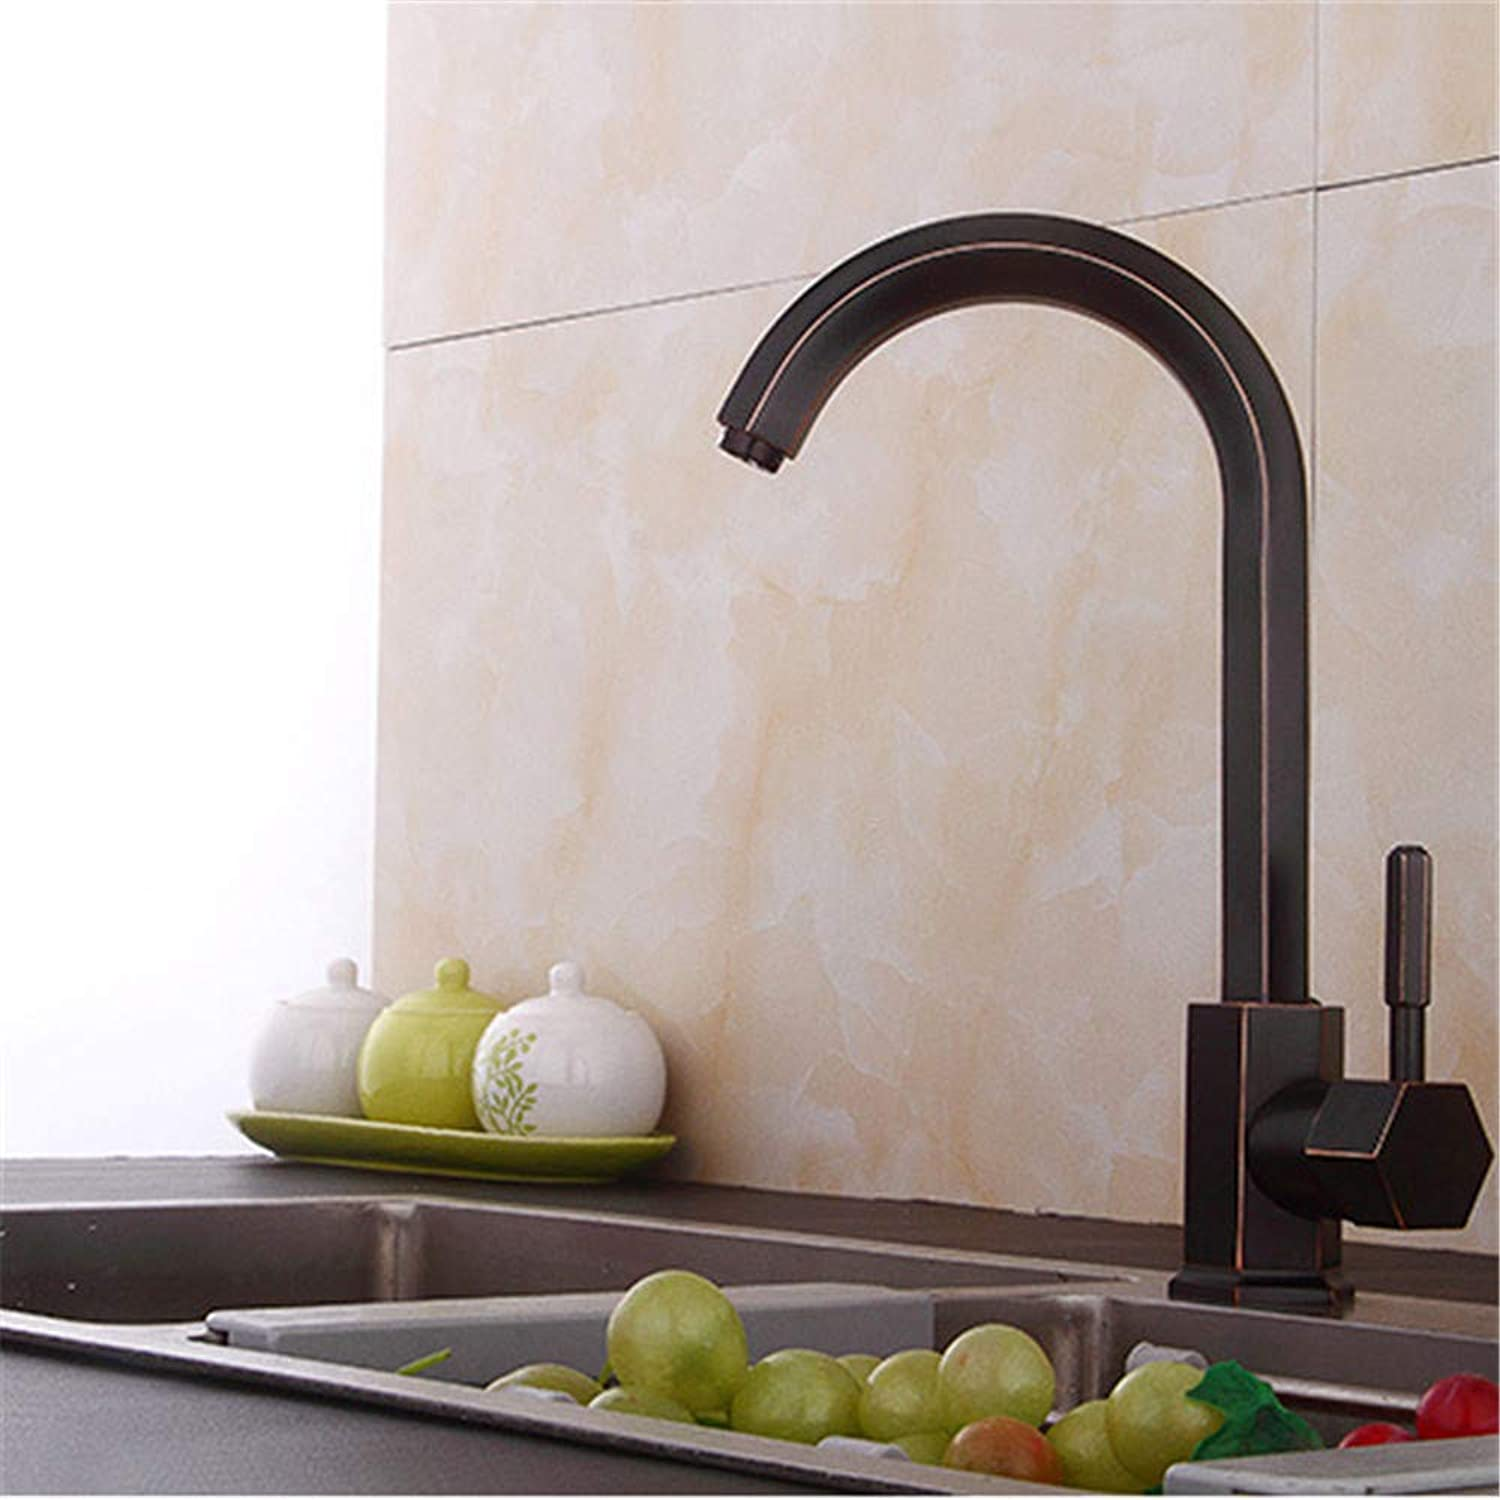 Decorry The New European-Style Kitchen Faucet Hot and Cold Vegetables Basin Faucet Single Hole Faucet DishS65-UE6589321680